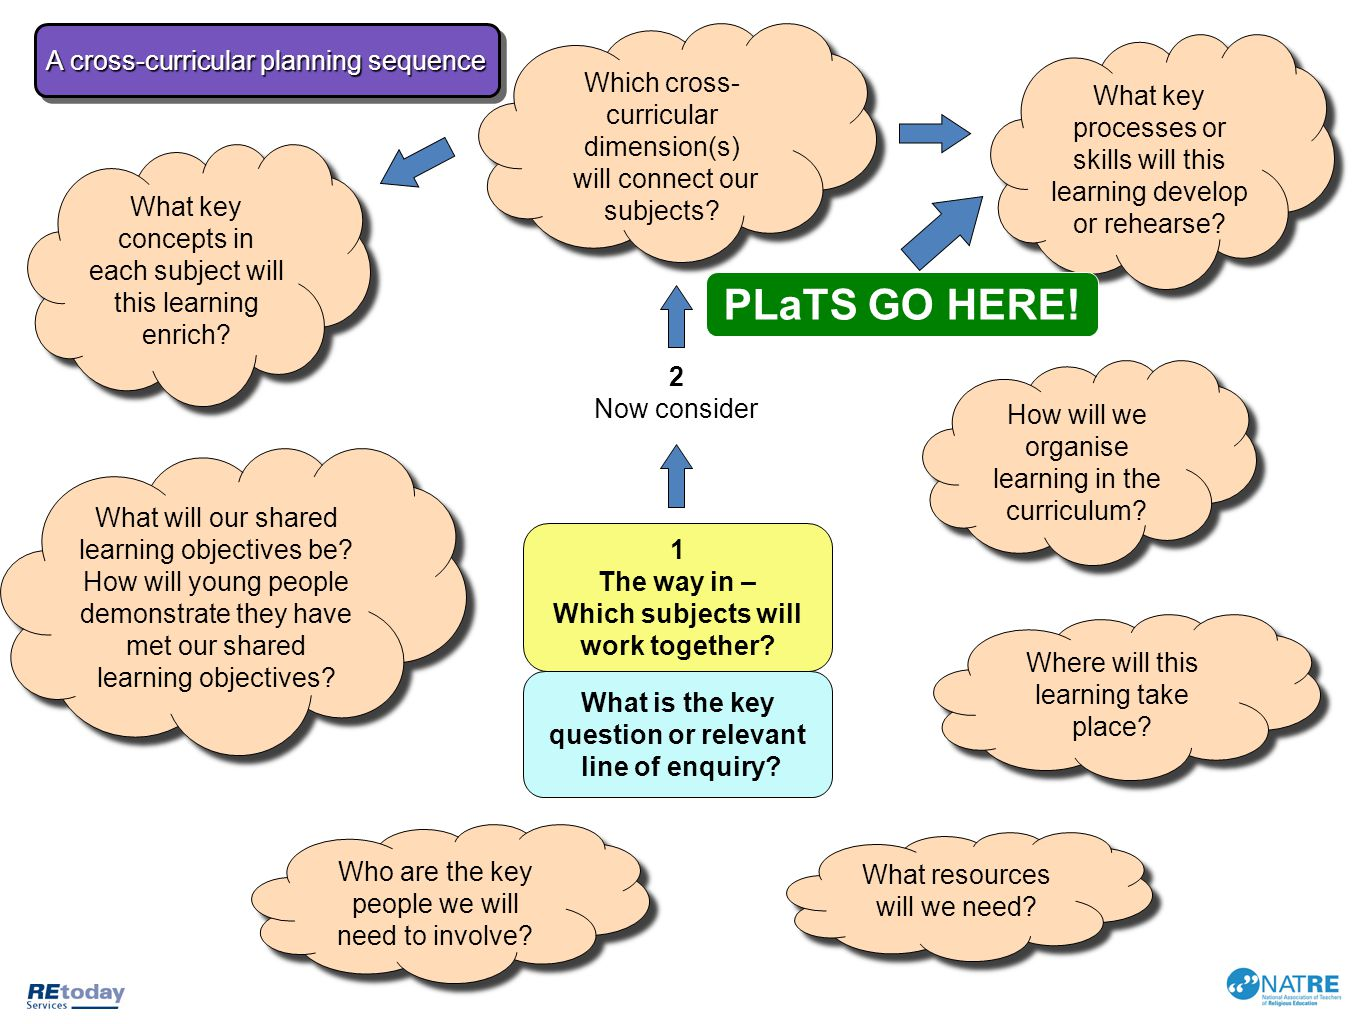 PLaTS GO HERE! A cross-curricular planning sequence